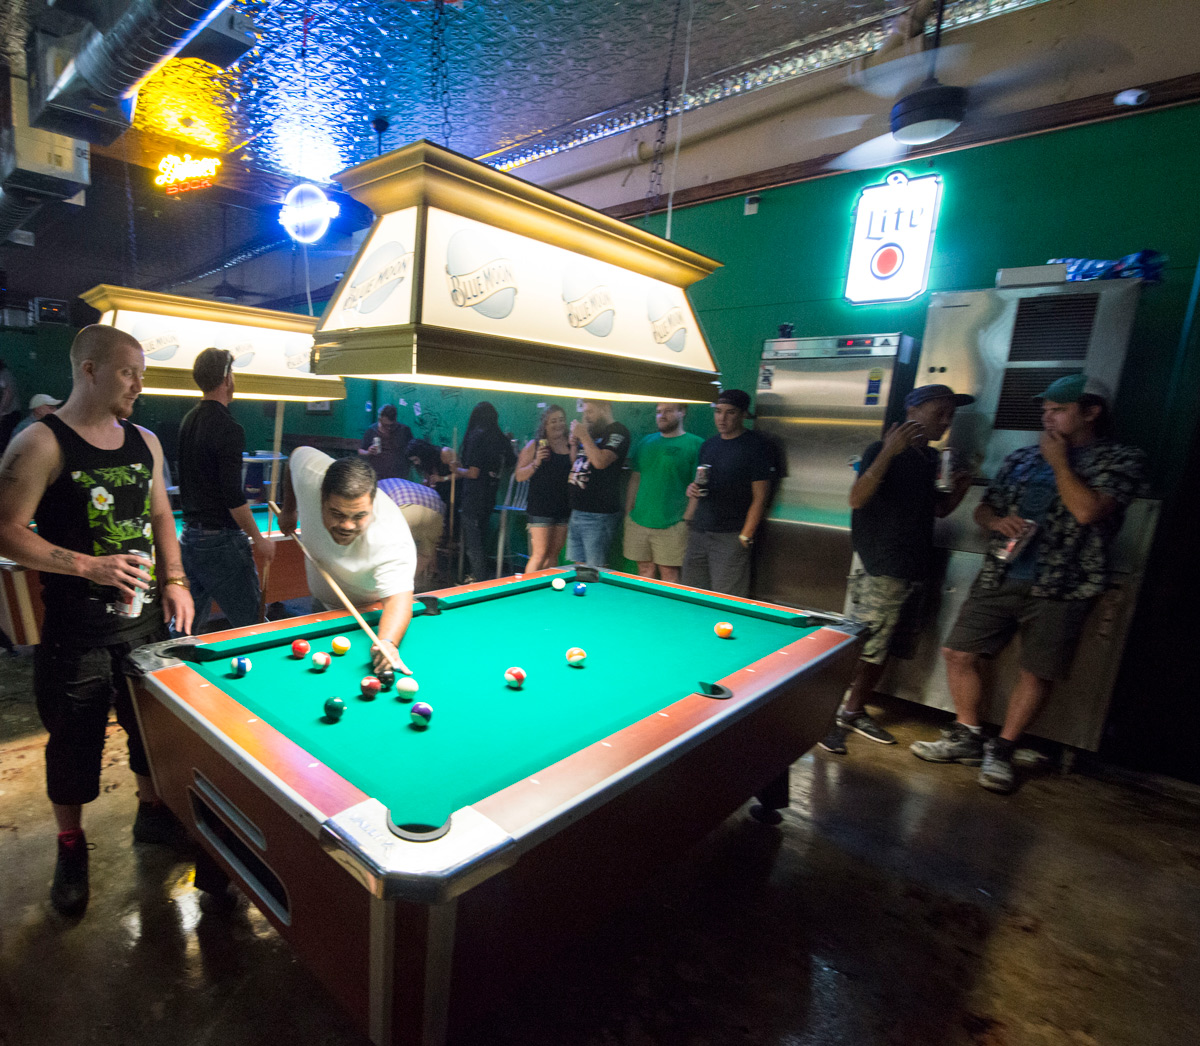 Picture of people playing pool at Midtown Billiards in Little Rock